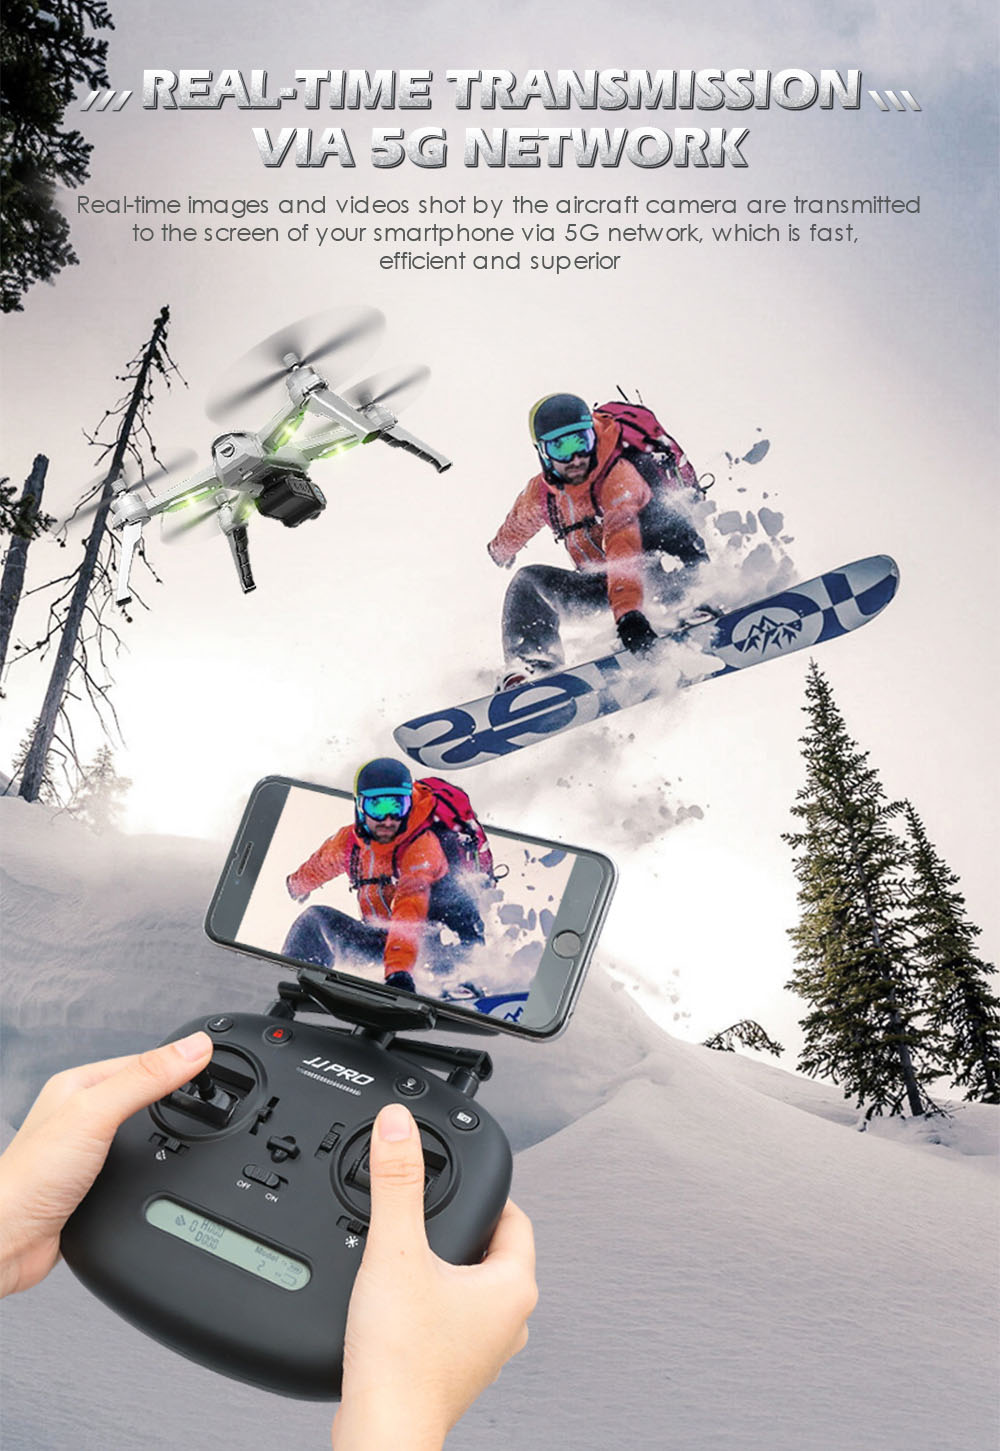 JJRC JJPRO X5 5G WiFi FPV RC Drone GPS Positioning Altitude Hold 2K Camera Point of Interesting Follow Brushless Motor- Light Gray One Battery with color box